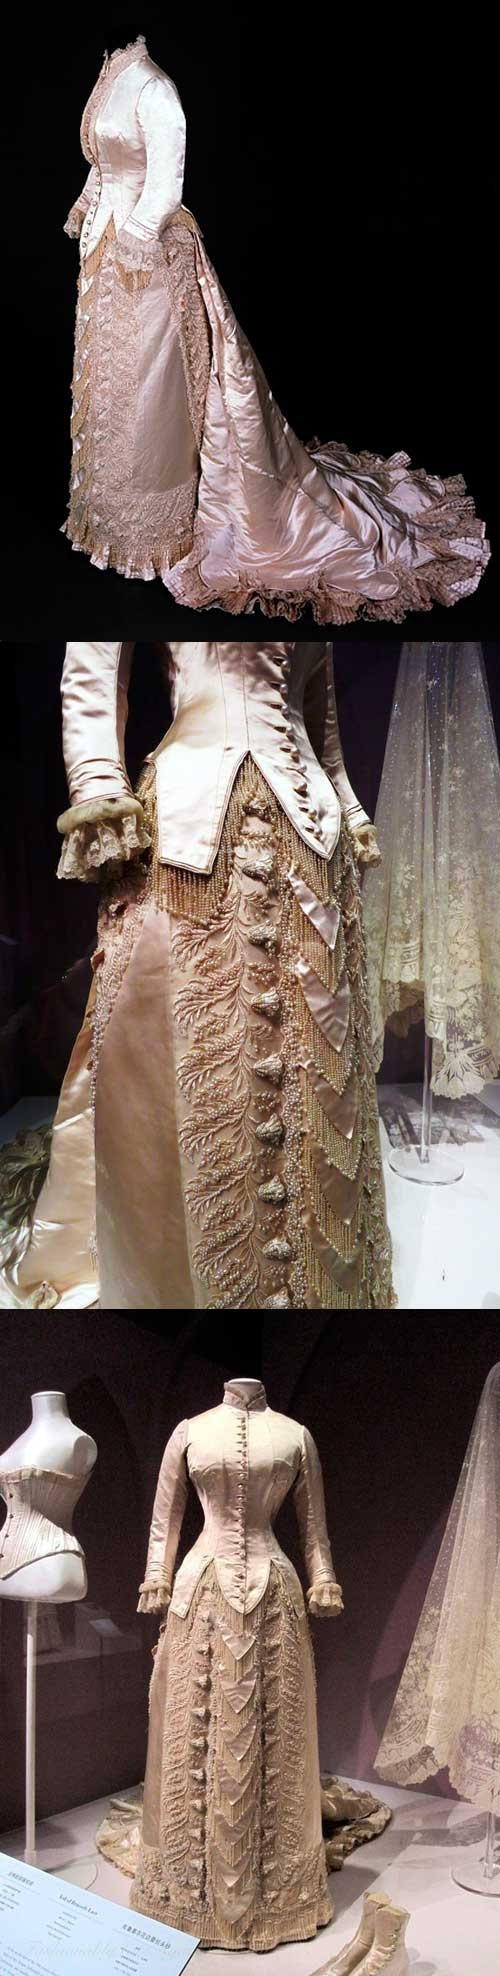 Wedding dress by Charles Frederick Worth, 1880. Bodice made of cream silk satin, fastened with pearls. Neck and center front opening trimmed with machine-made lace. Lined with white silk and braid. Skirt of cream silk satin. Front and hips trimmed with panel of embroidery on net with pearls and satin stitch in design of leaves and stiffened bell-shaped flowers. Overlapping lobes of satin trimmed with pearl fringe in the center. Train of cut and uncut velvet. #wedding #worth